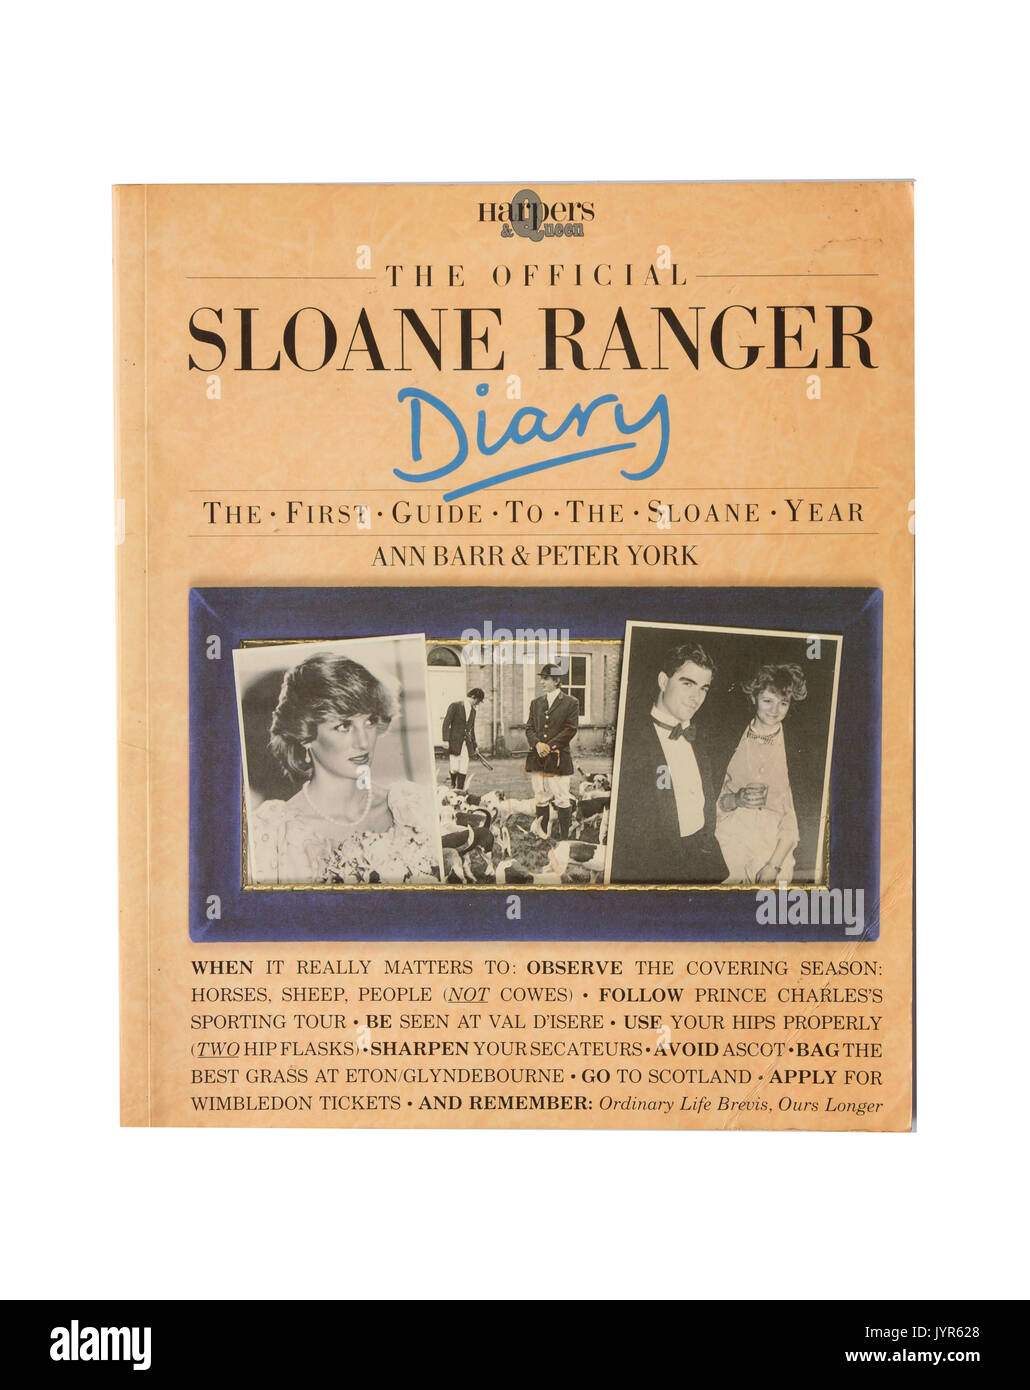 The Official Sloane Ranger Diary, Greater London, England, United Kingdom - Stock Image